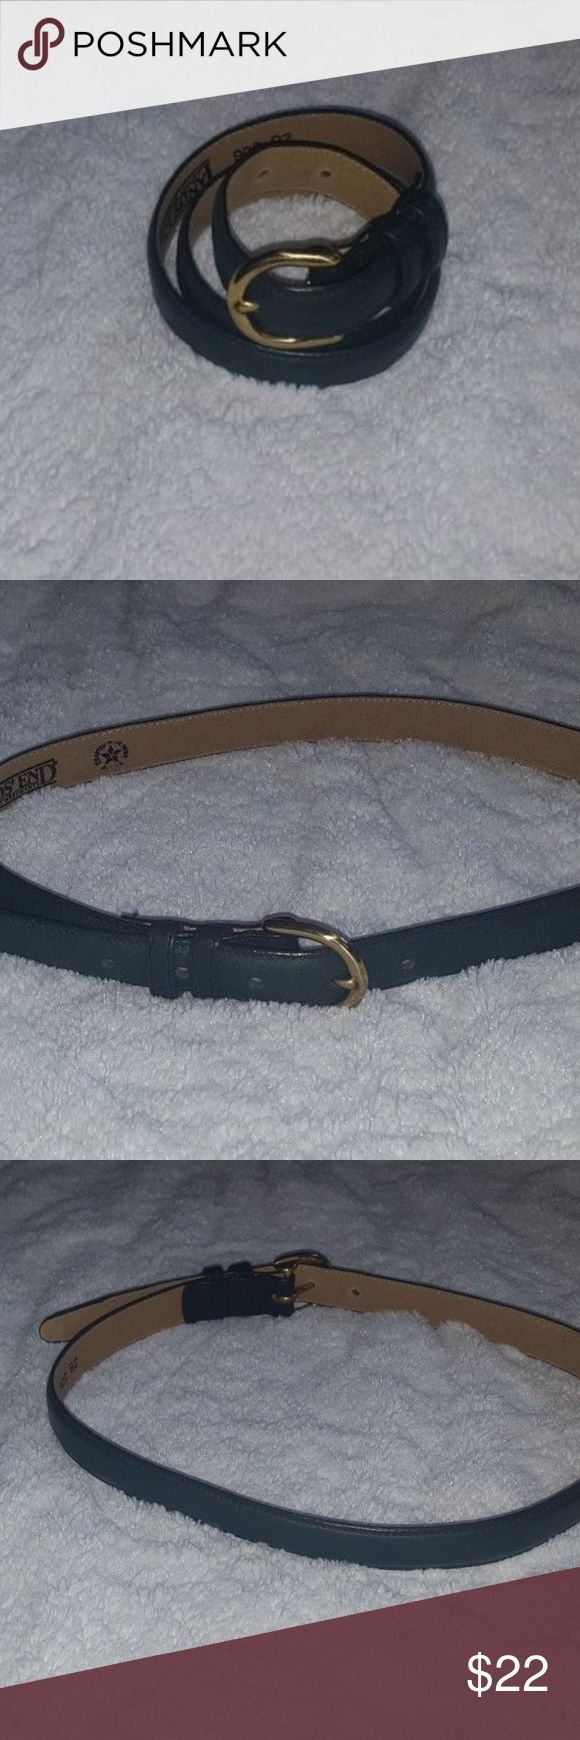 "Lands' End Size 28 Waist Womens Belt Green Leather Lands' End Size 28 Waist Womens Belt Green Leather Solid Brass Buckle   Never worn belt. Only sign of use is the bend from where it was stored, see photo.   Width 7/8""  Length from buckle to end 33 7/8"" Lands' End Accessories Belts"